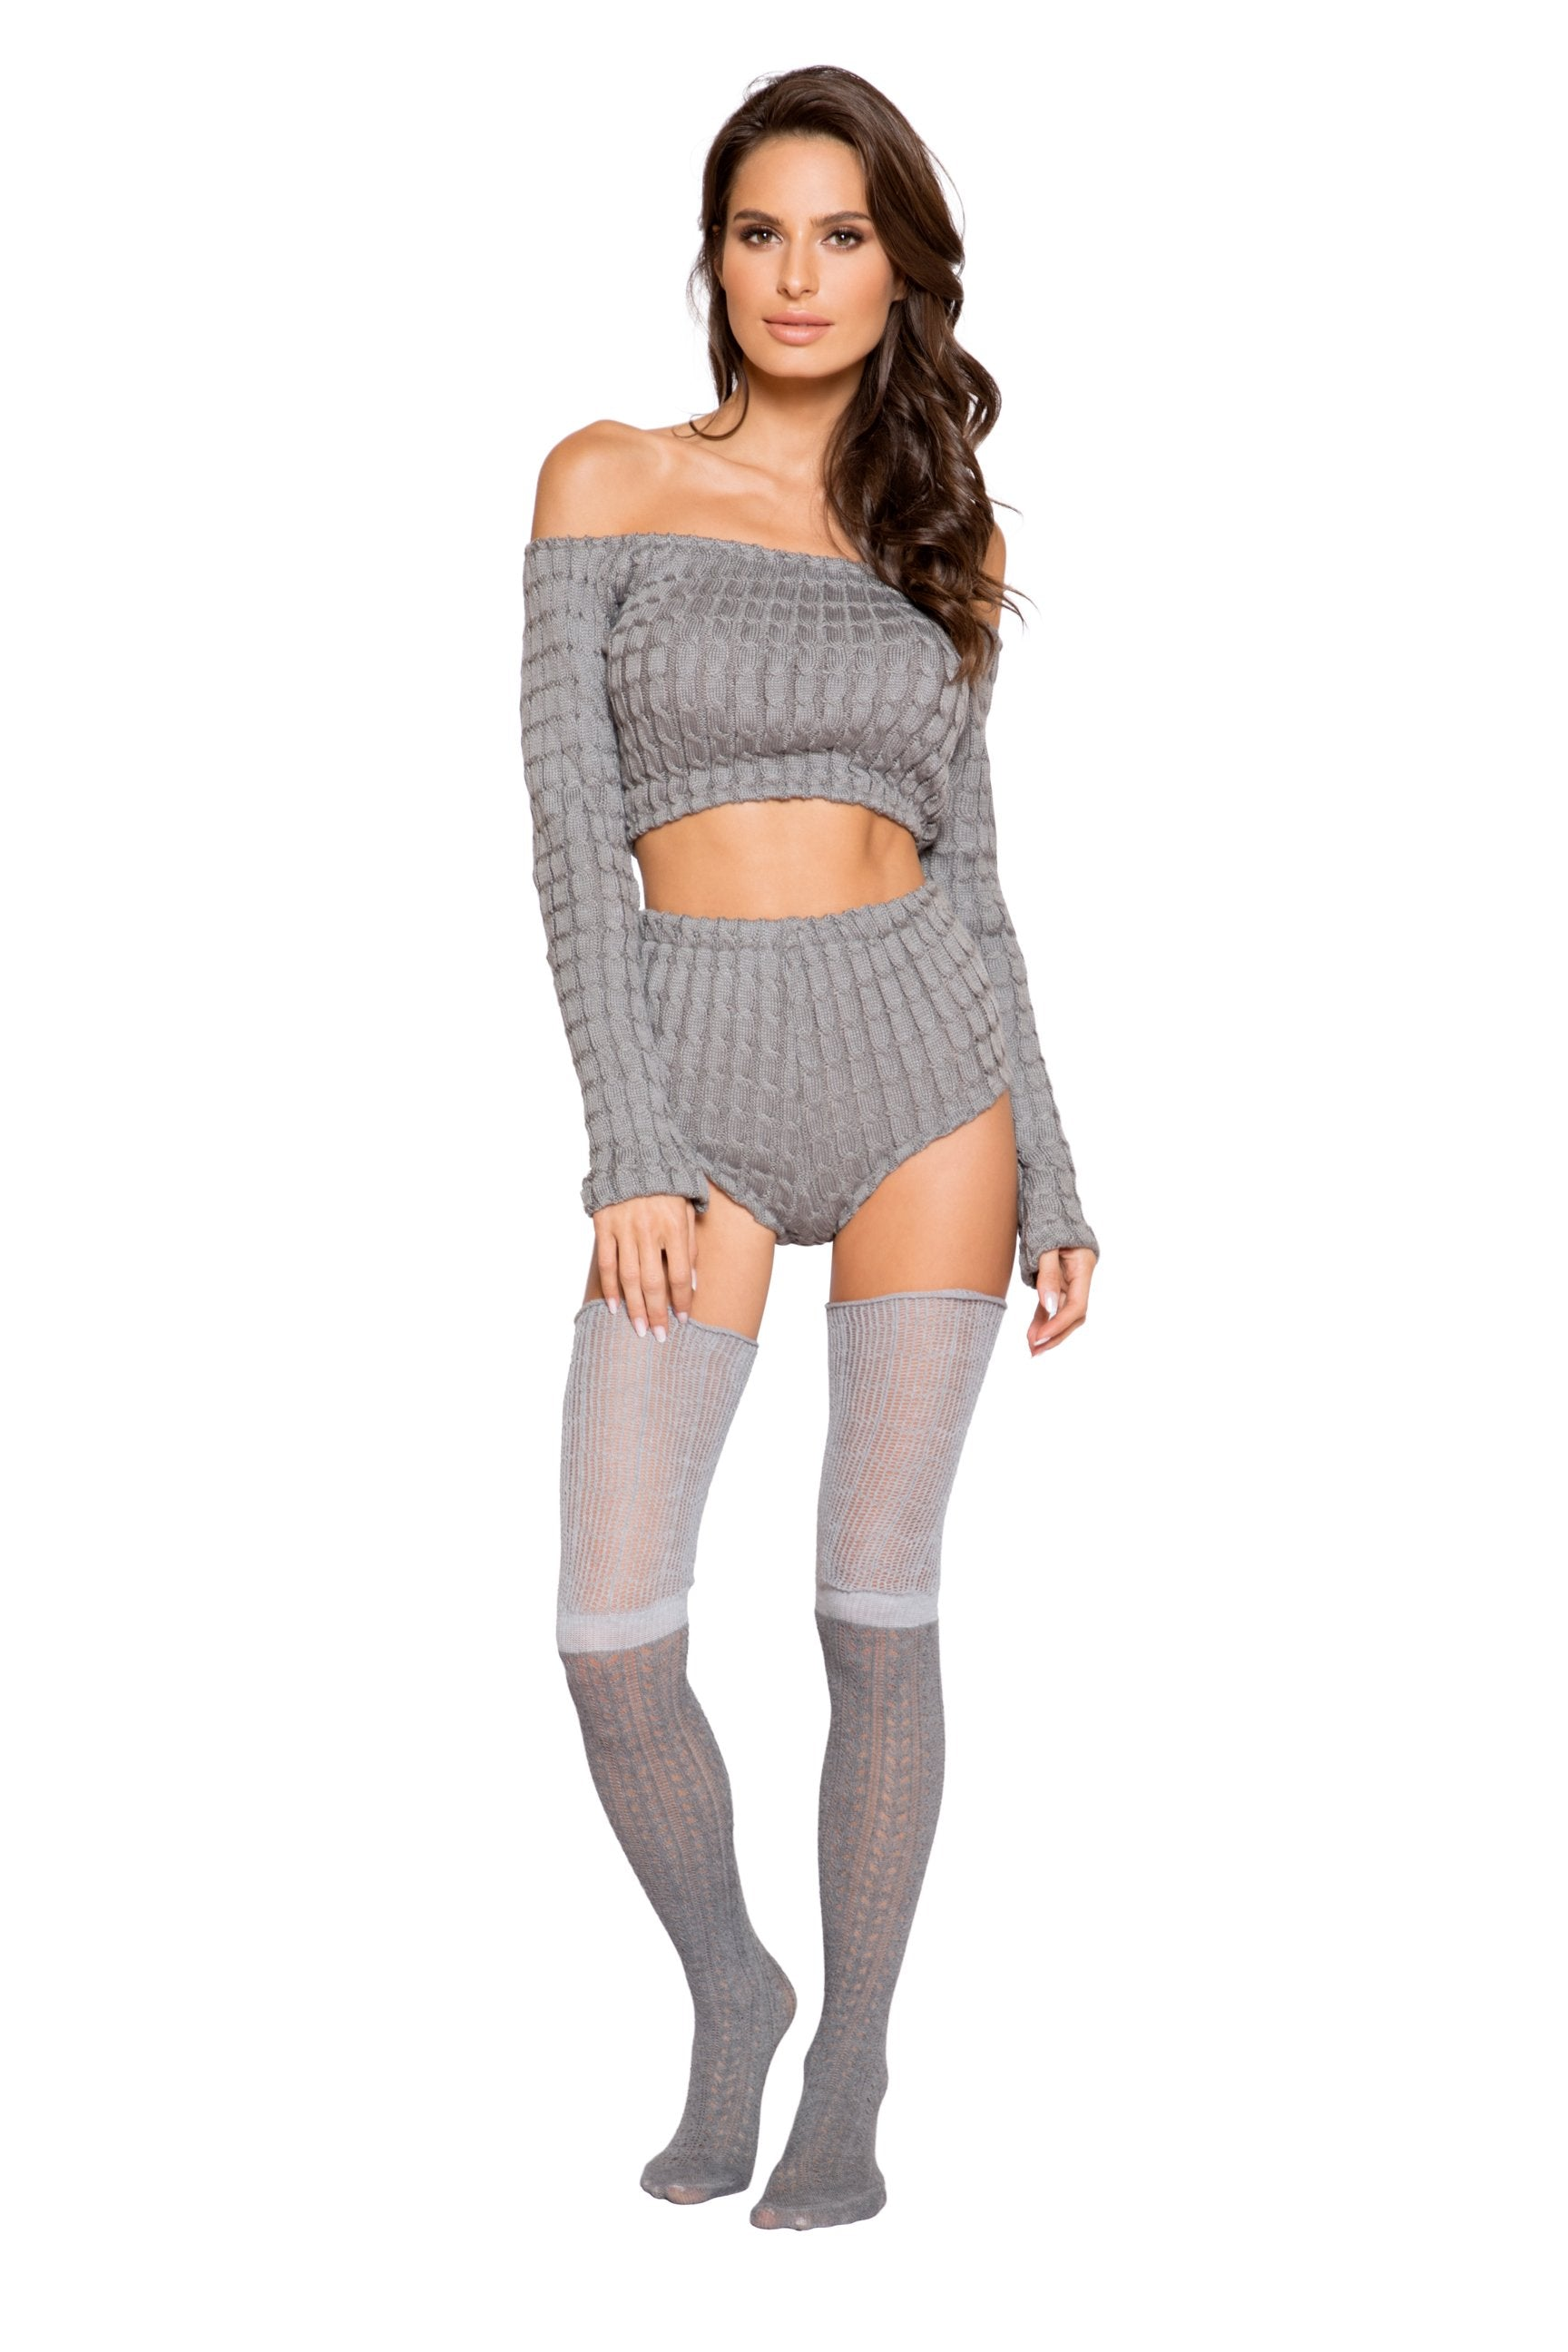 1cf36916cda9 LI287 - Cozy   Comfy Pajama Short Set – Electrique Boutique